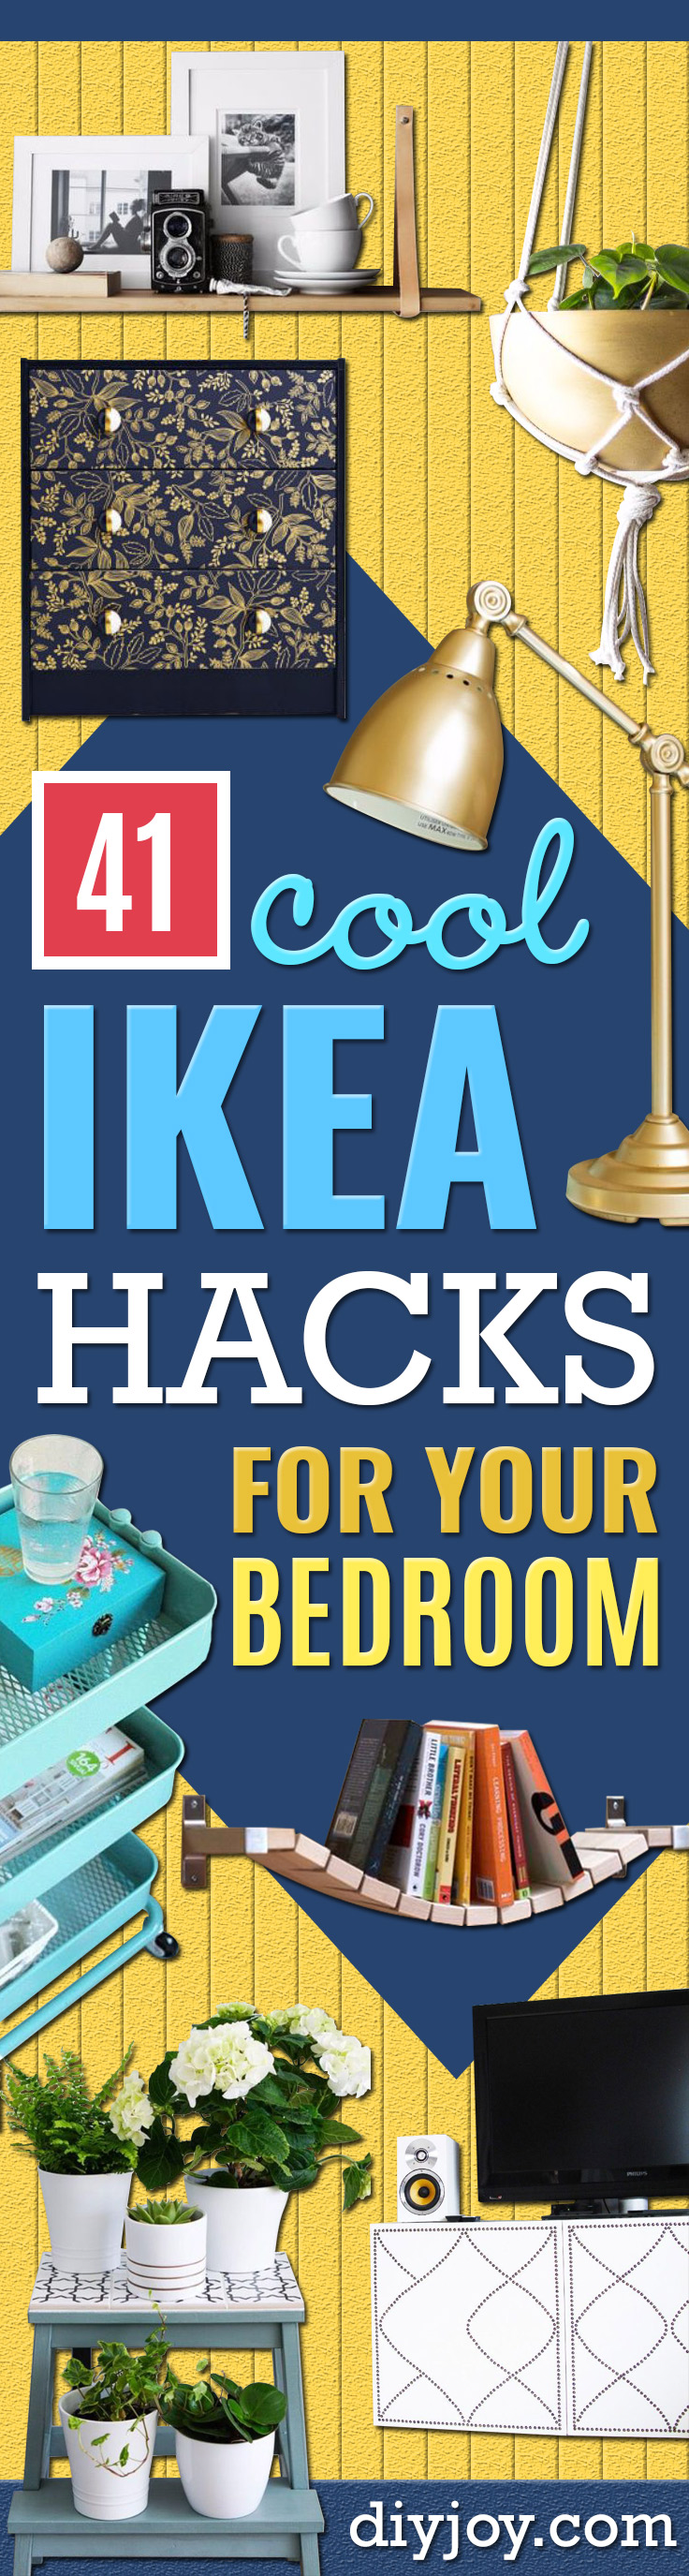 IKEA Hacks For The Bedroom - Best IKEA Furniture Hack Ideas for Bed, Storage, Nightstnad, Closet System and Storage, Dresser, Vanity, Wall Art and Kids Rooms - Easy and Cheap DIY Projects for Affordable Room and Home Decor http://diyjoy.com/ikea-hacks-bedroom